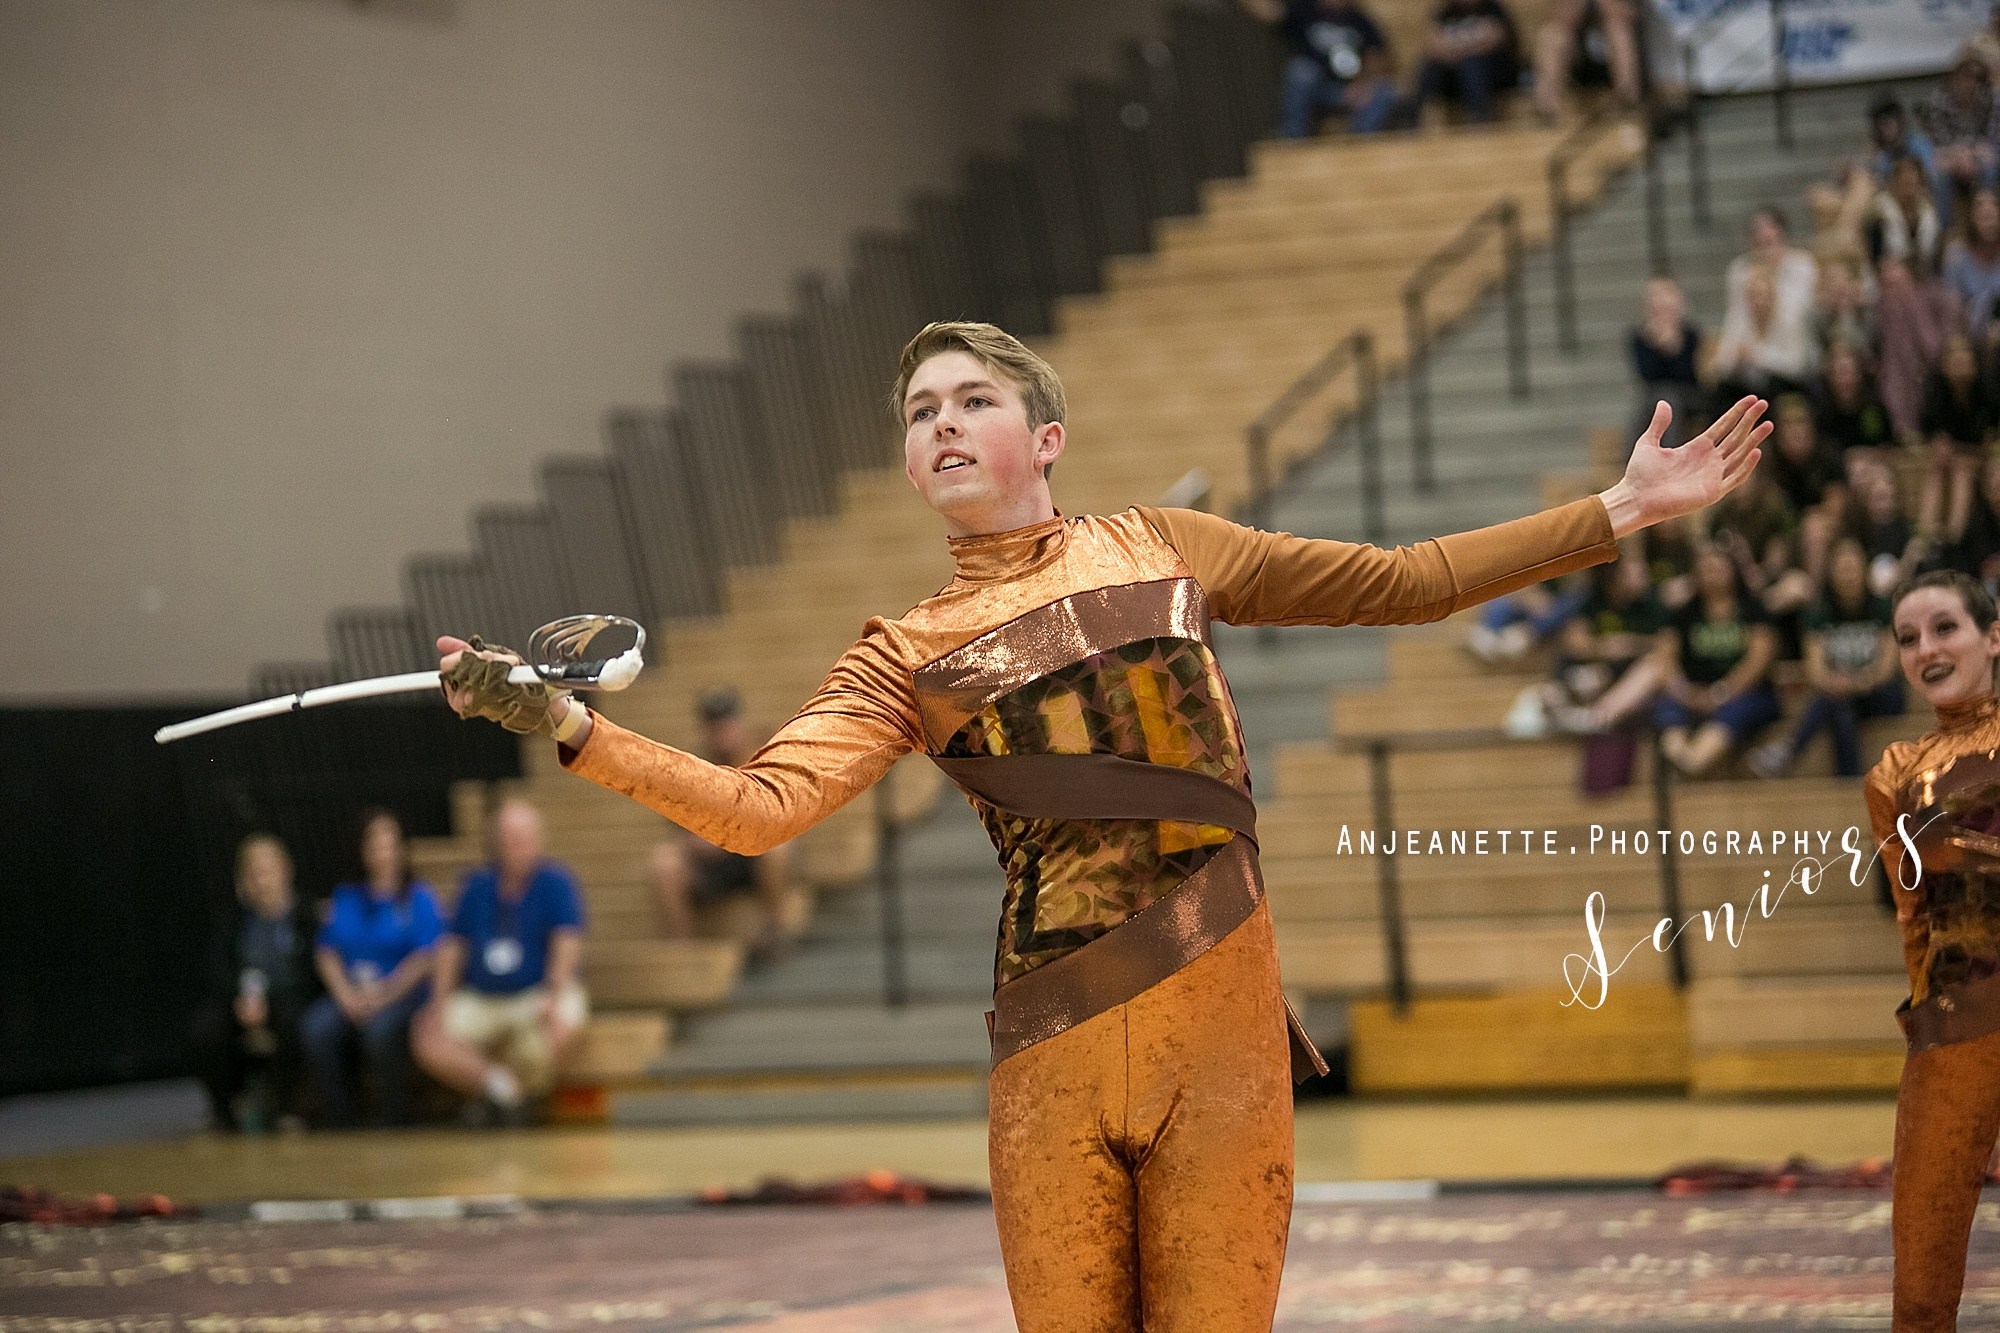 Arizona marching band color guard Peoria Az winterguard DCI drum corps WGI  portrait photographer Anjeanette Photography tempe desert vista